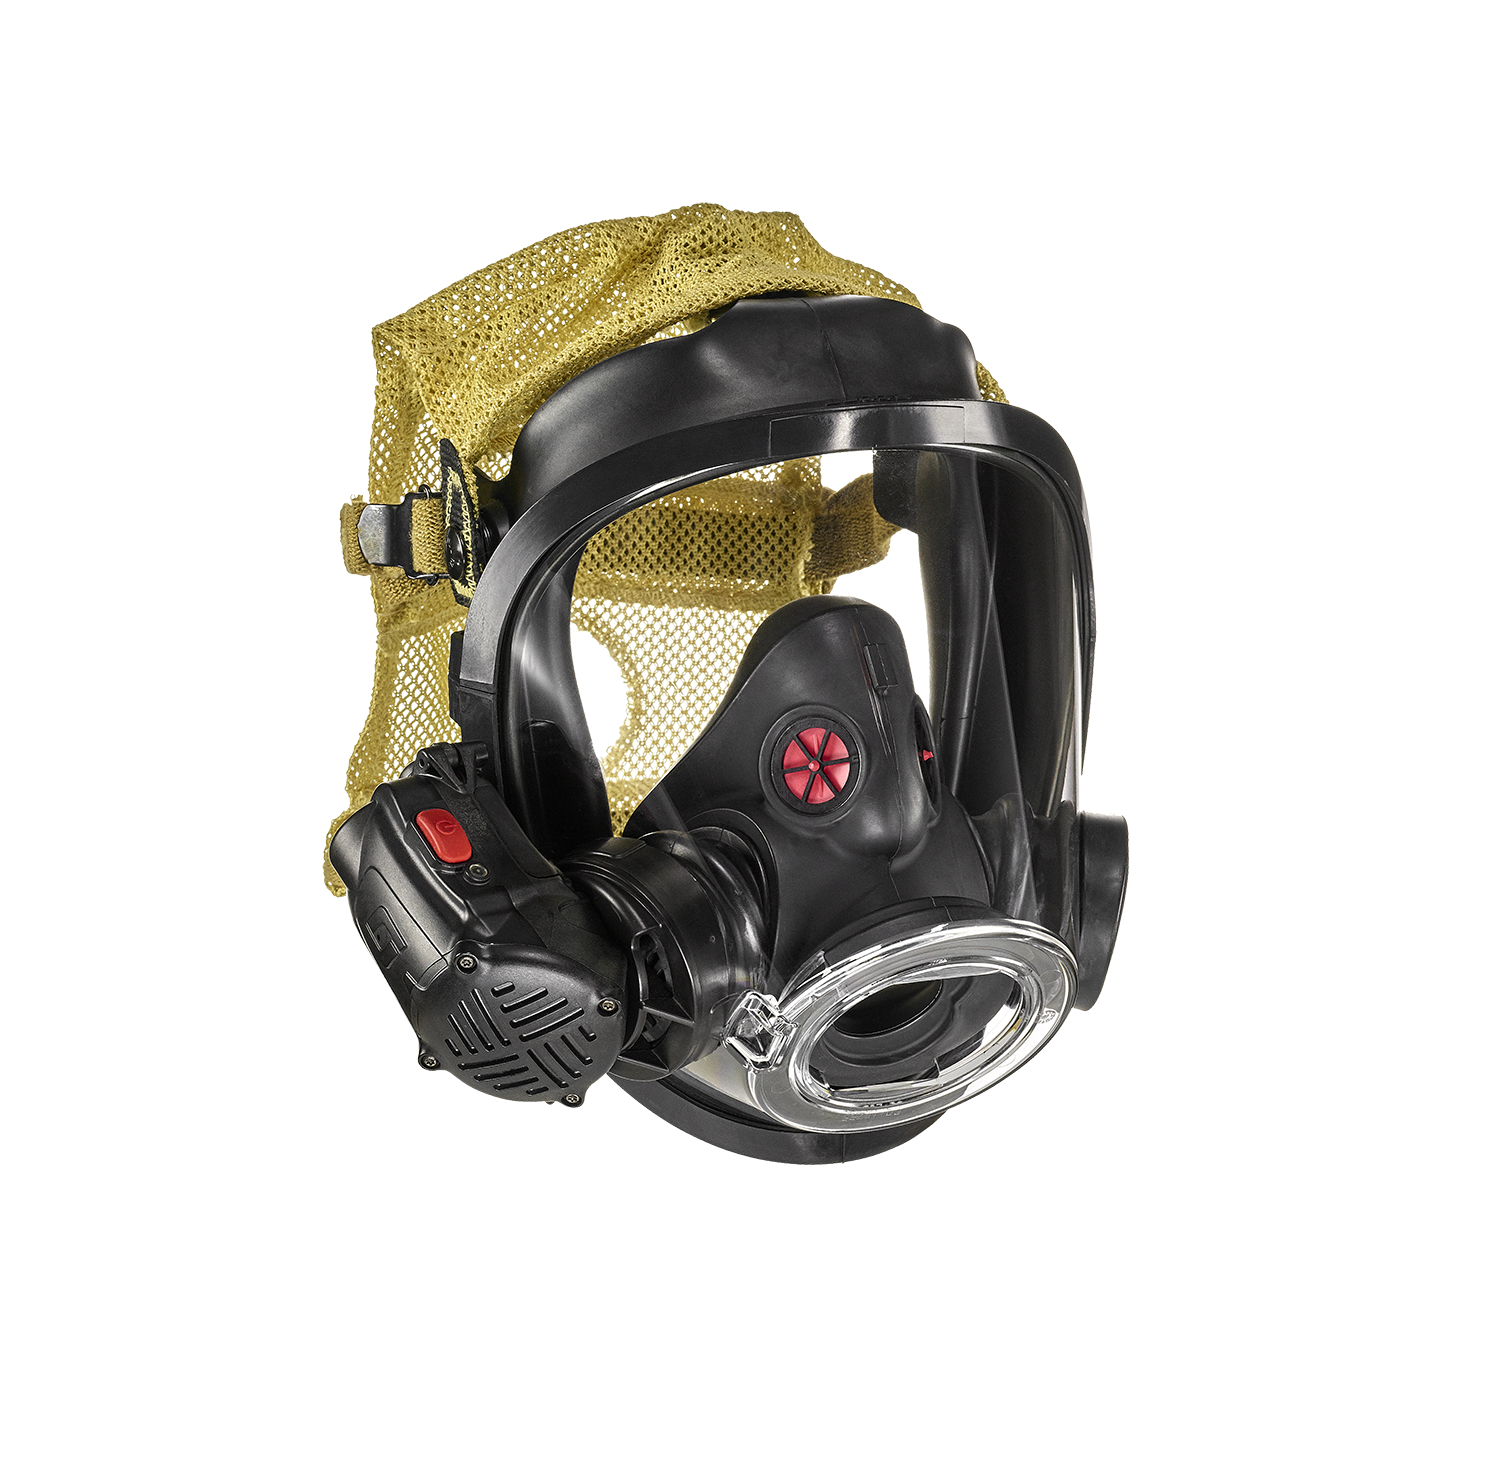 3m breather mask